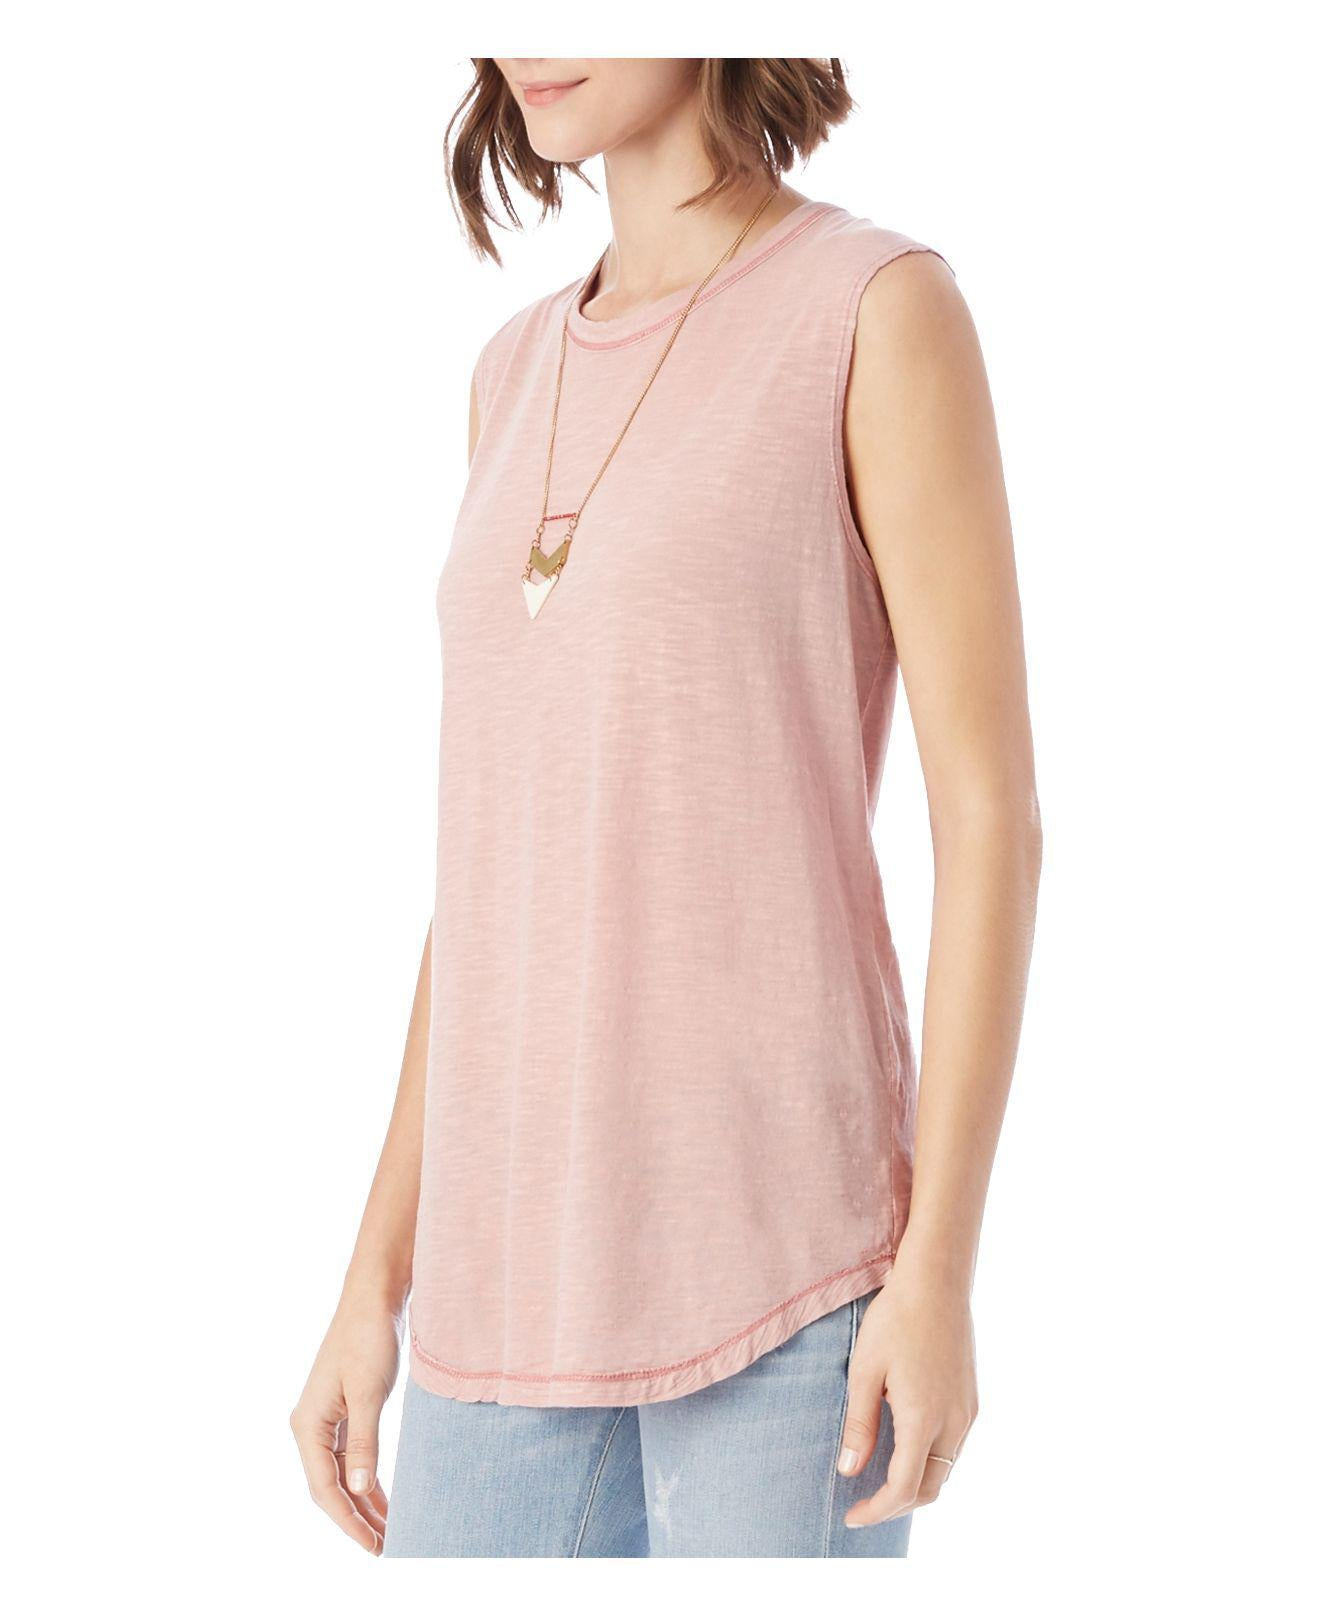 Blair Basic Muscle Tank- Rose - Shirts - The Valley Boutique - Canada Online Shopping